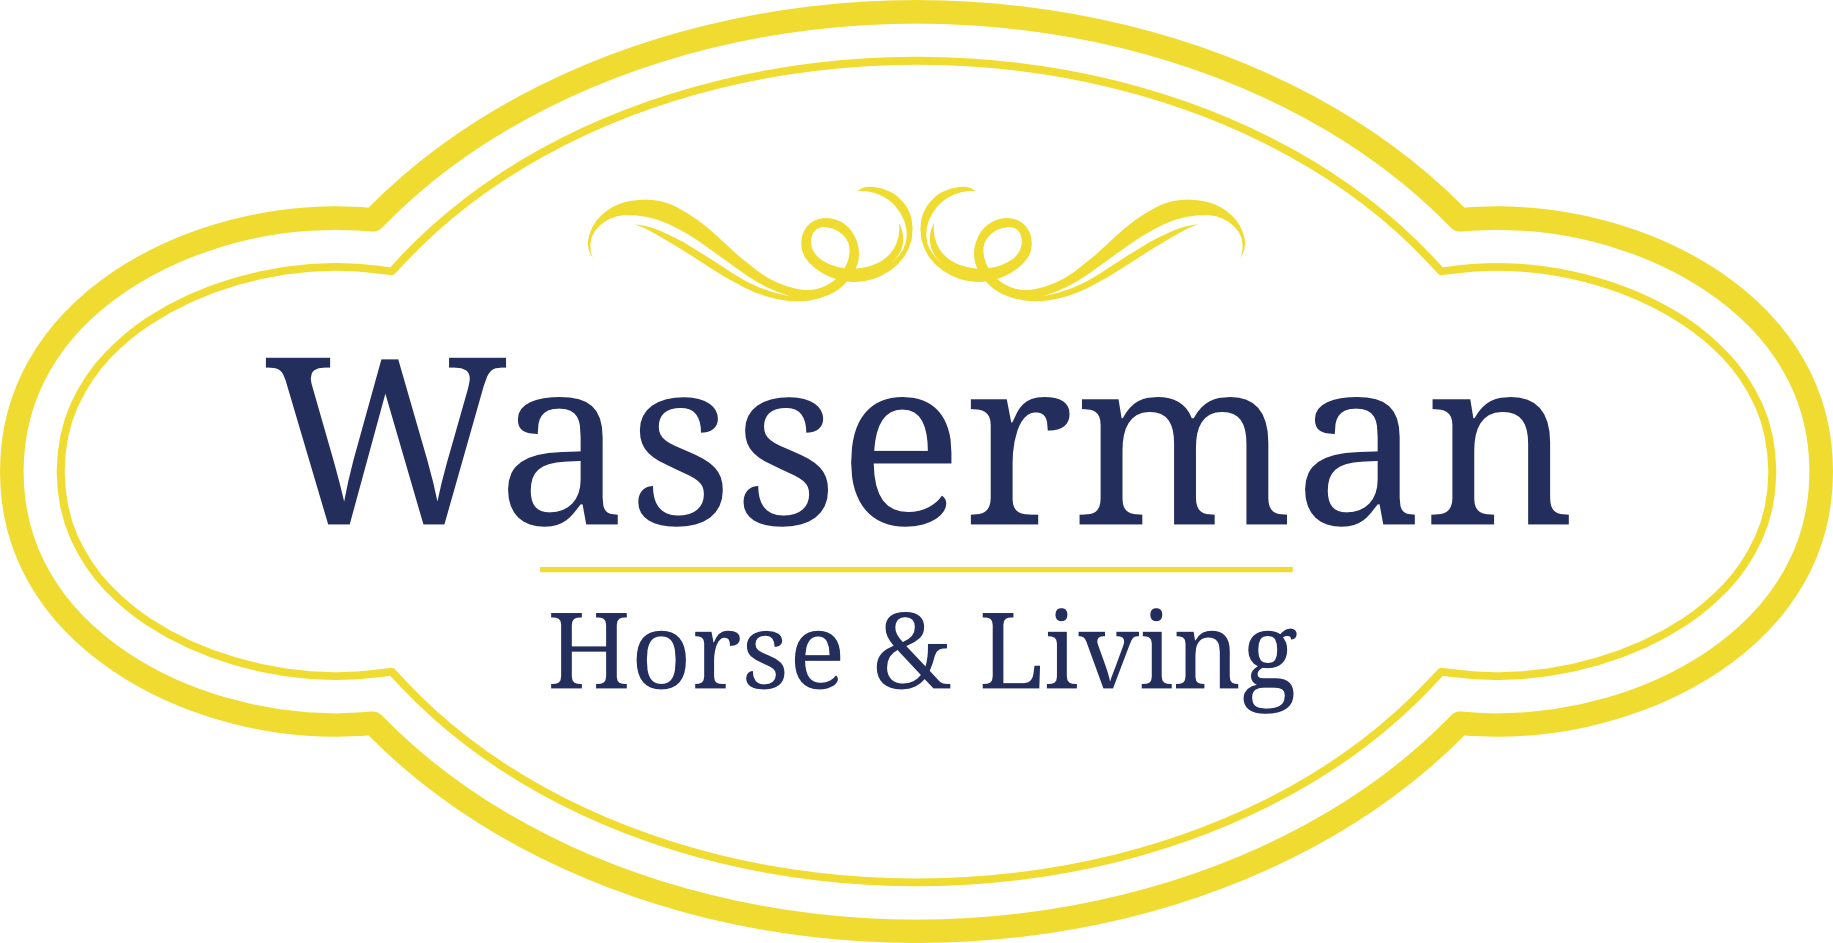 Wasserman - Horse & Living